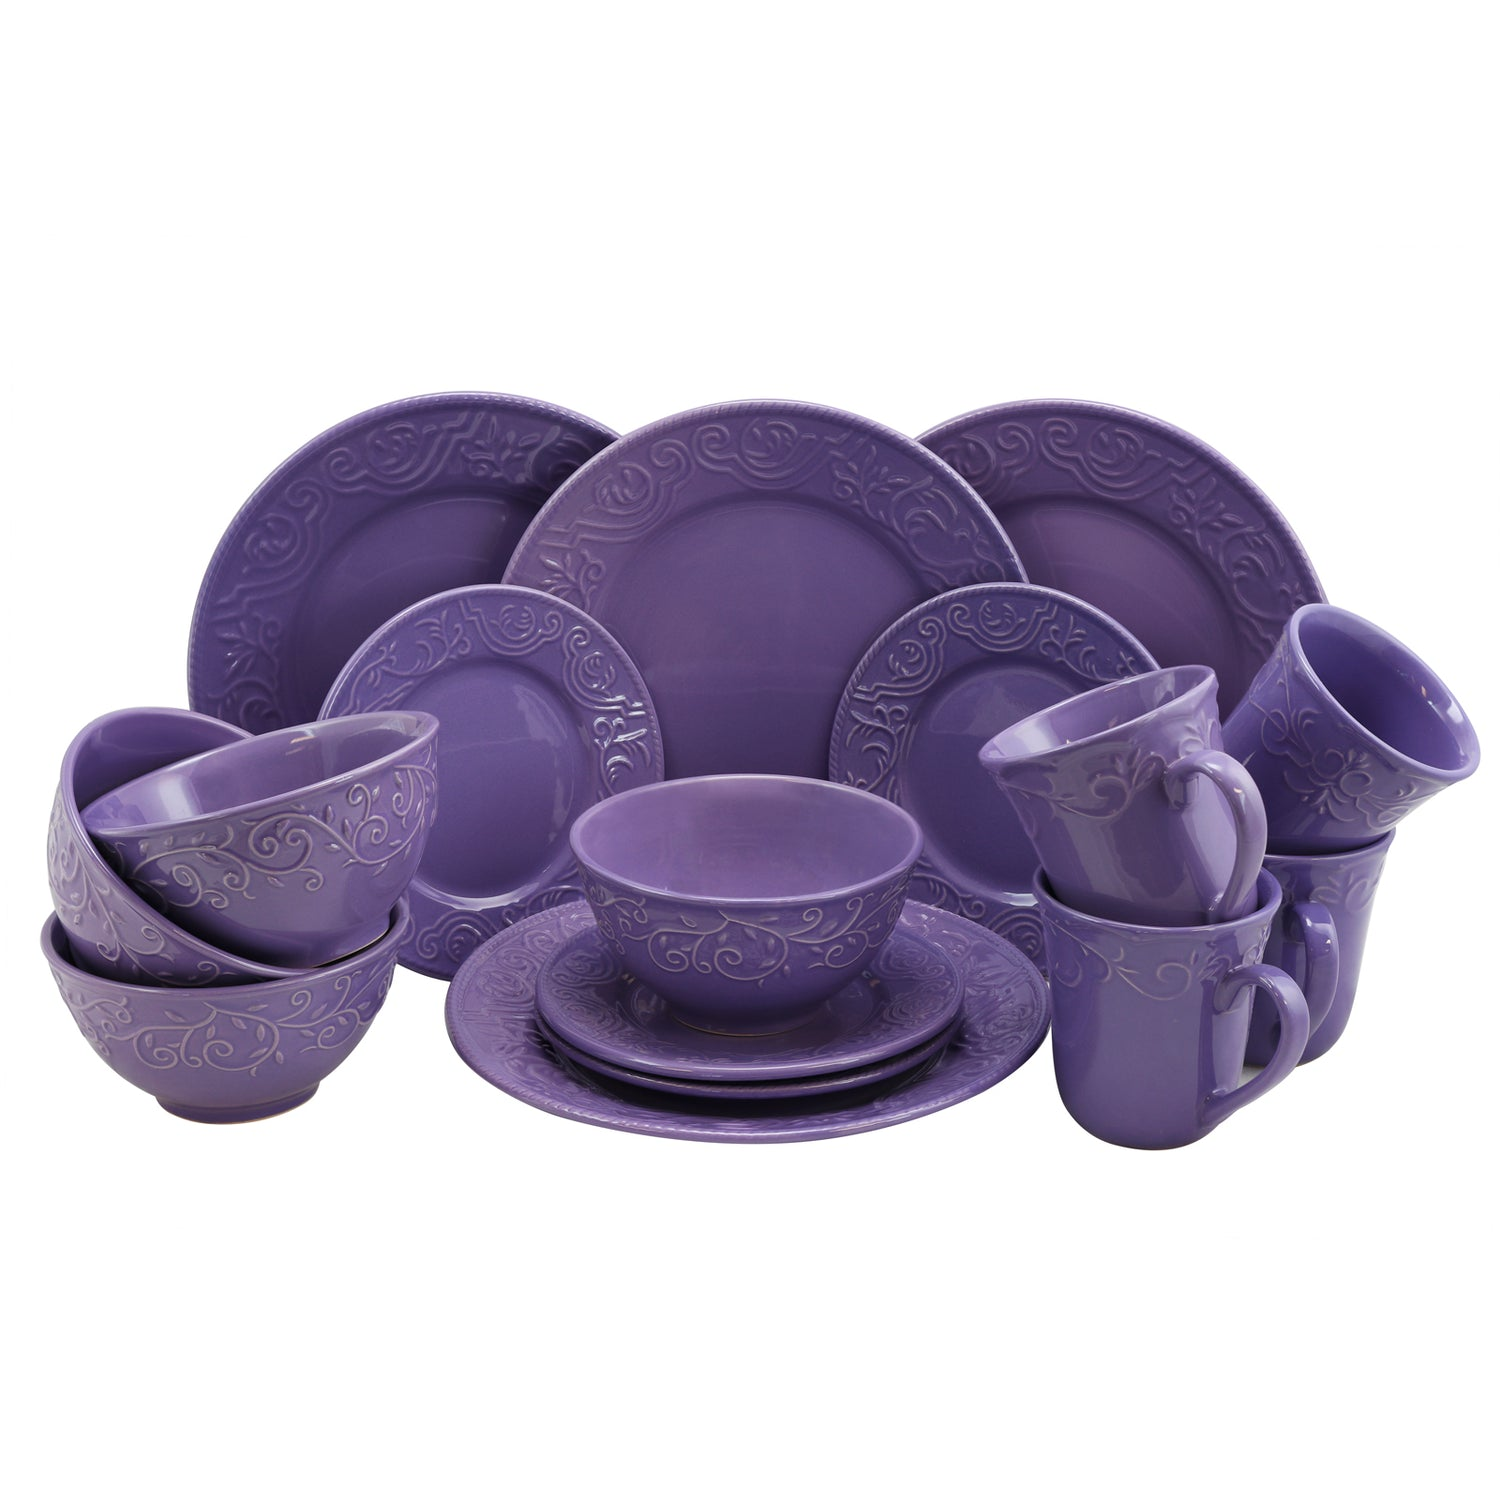 Trendy Purple dinnerware set on a white background.